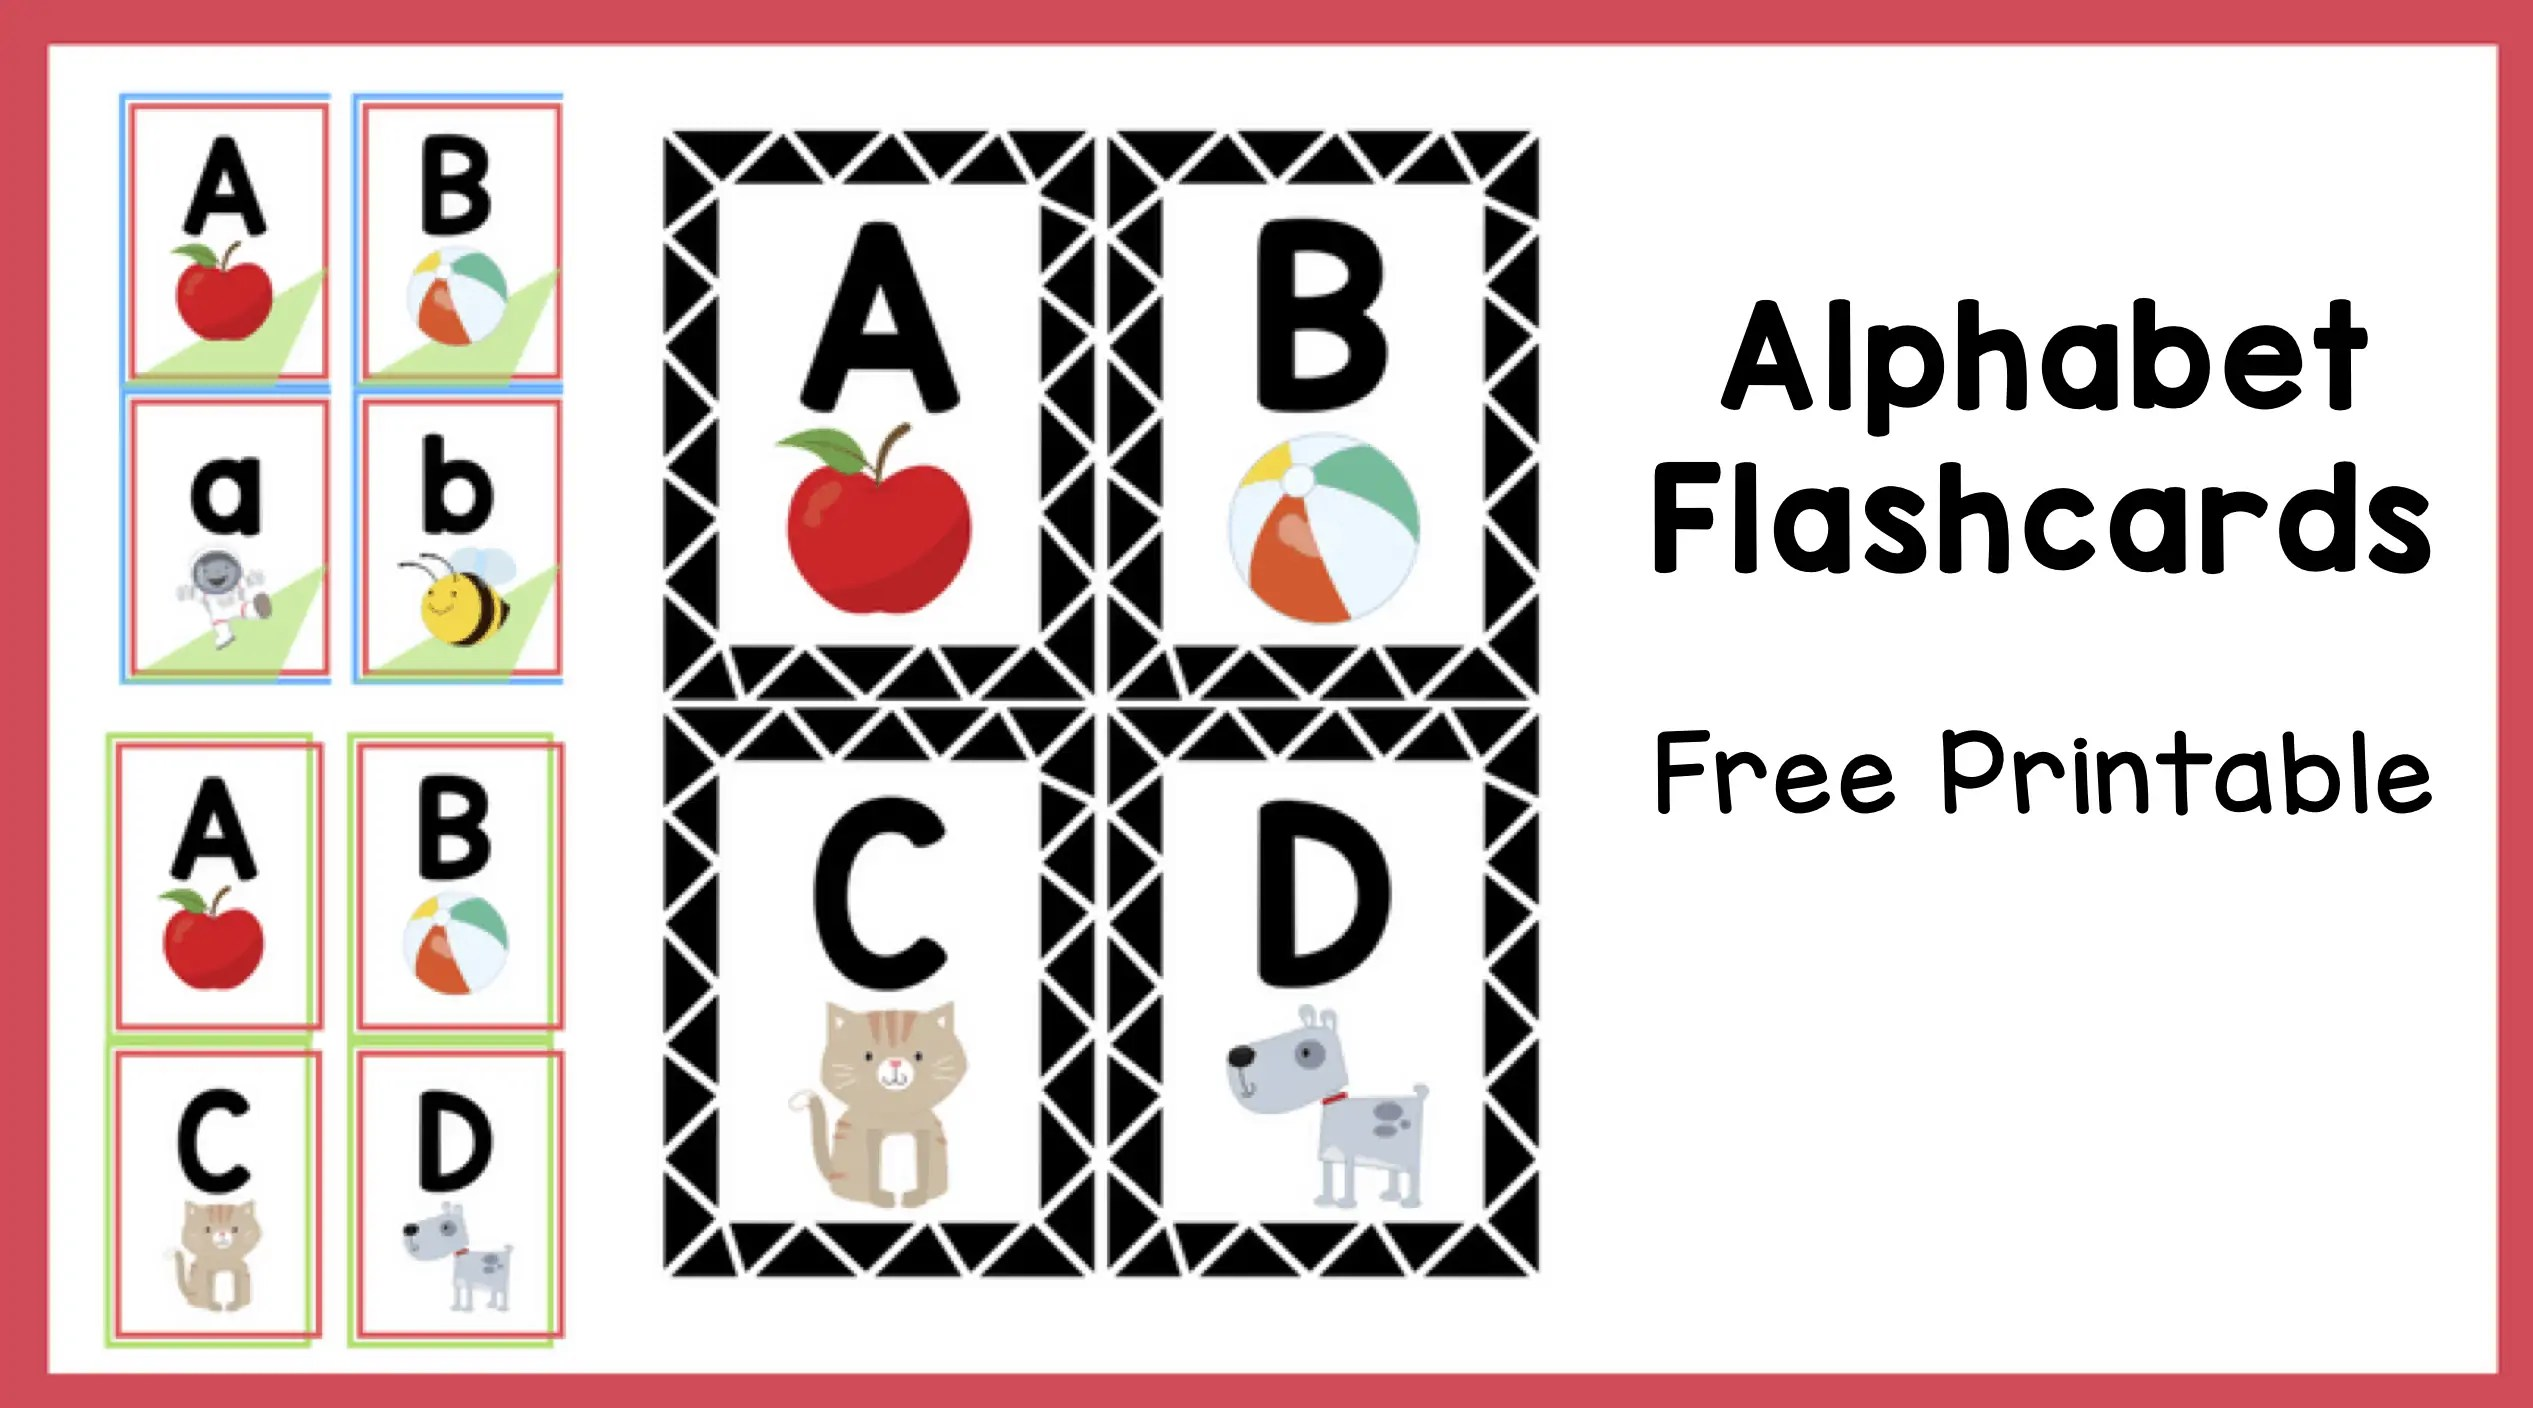 image relating to Abc Flash Cards Printable called Alphabet Flashcards Absolutely free Printable - The Instruction Aunt